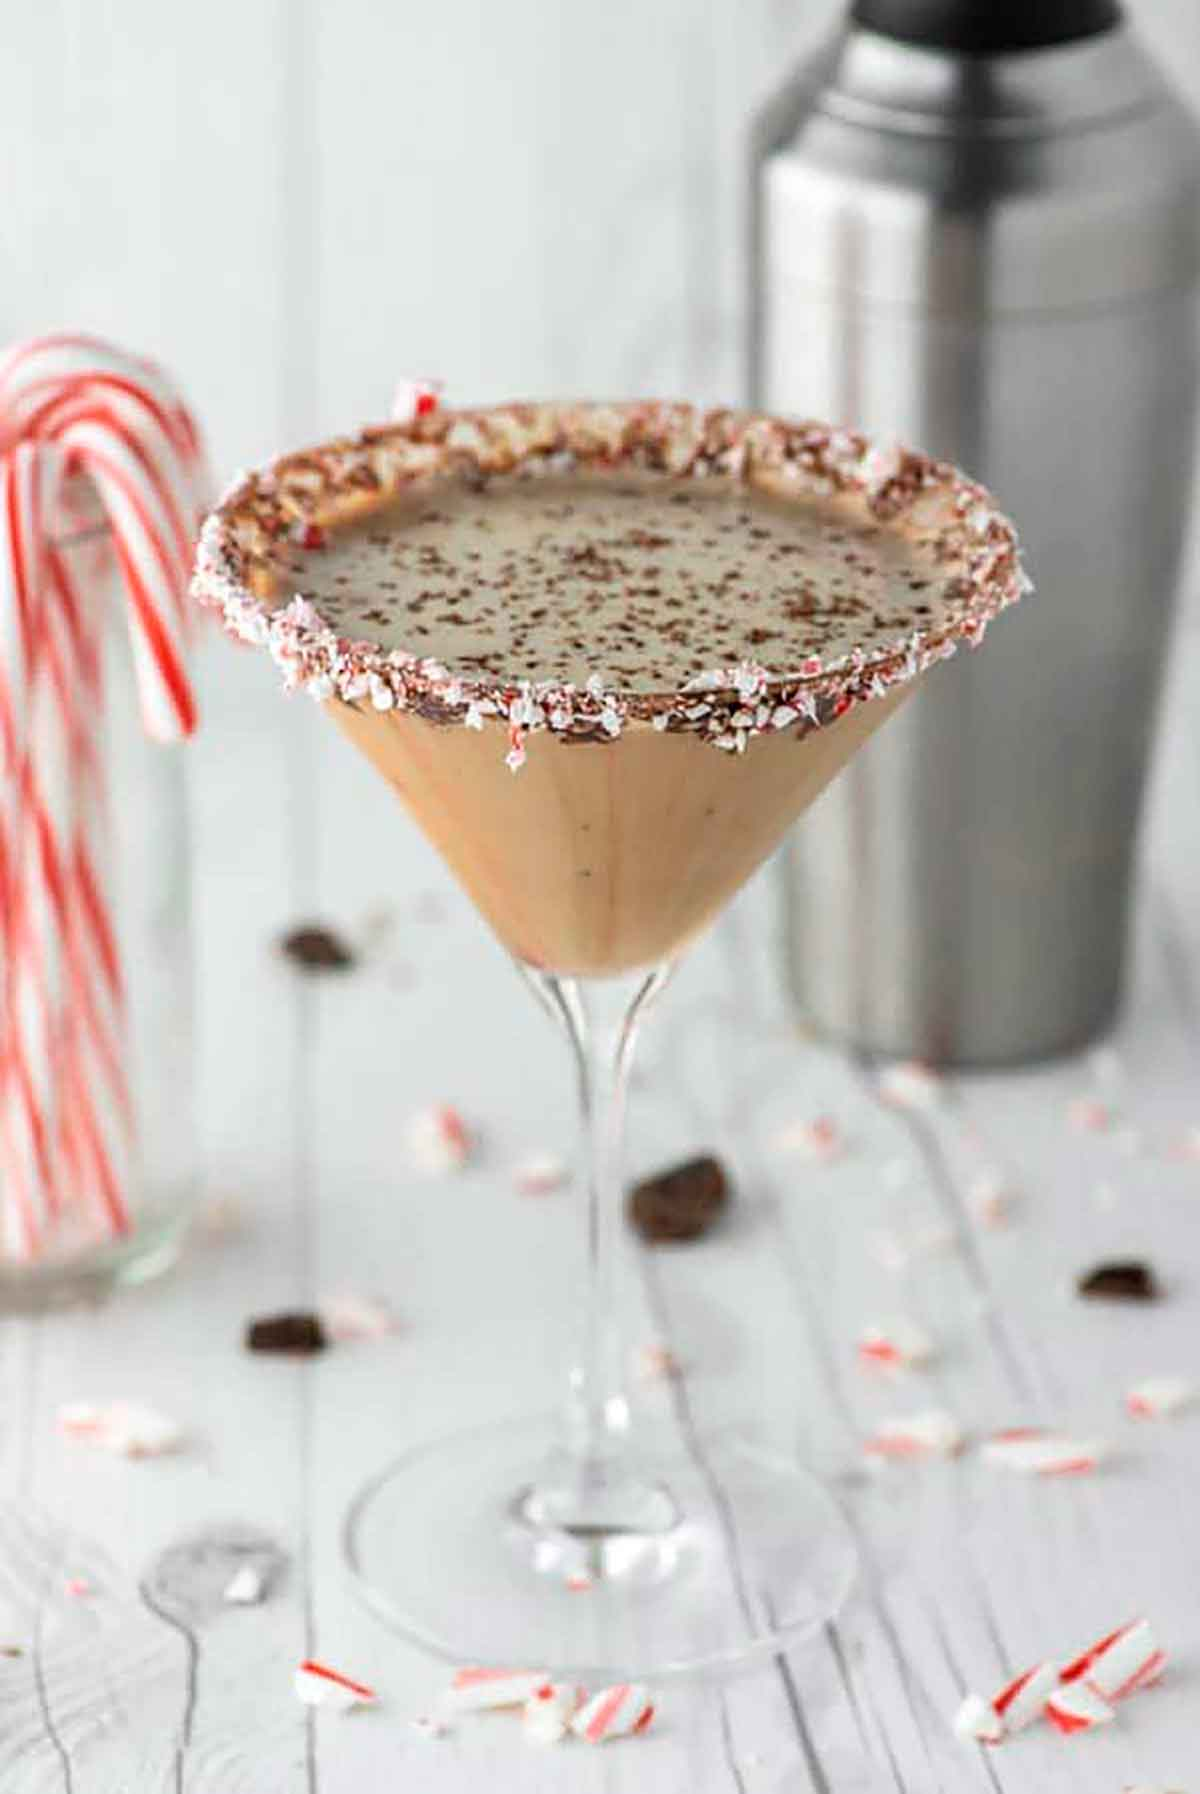 A creamy, chocolate cocktail beside a glass of candy canes and a cocktail shaker.